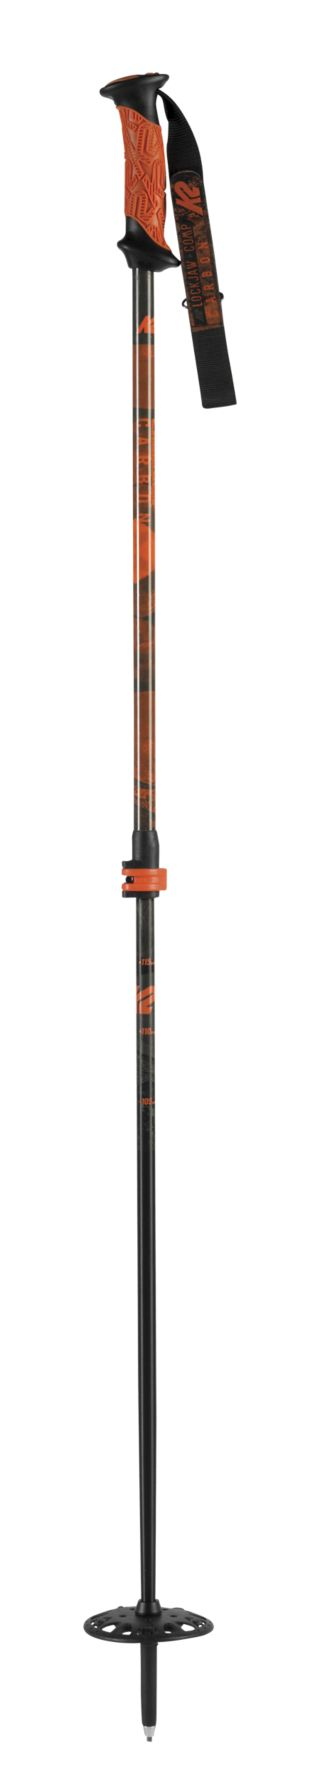 K2 Skis - LockJaw Comp Ski Pole